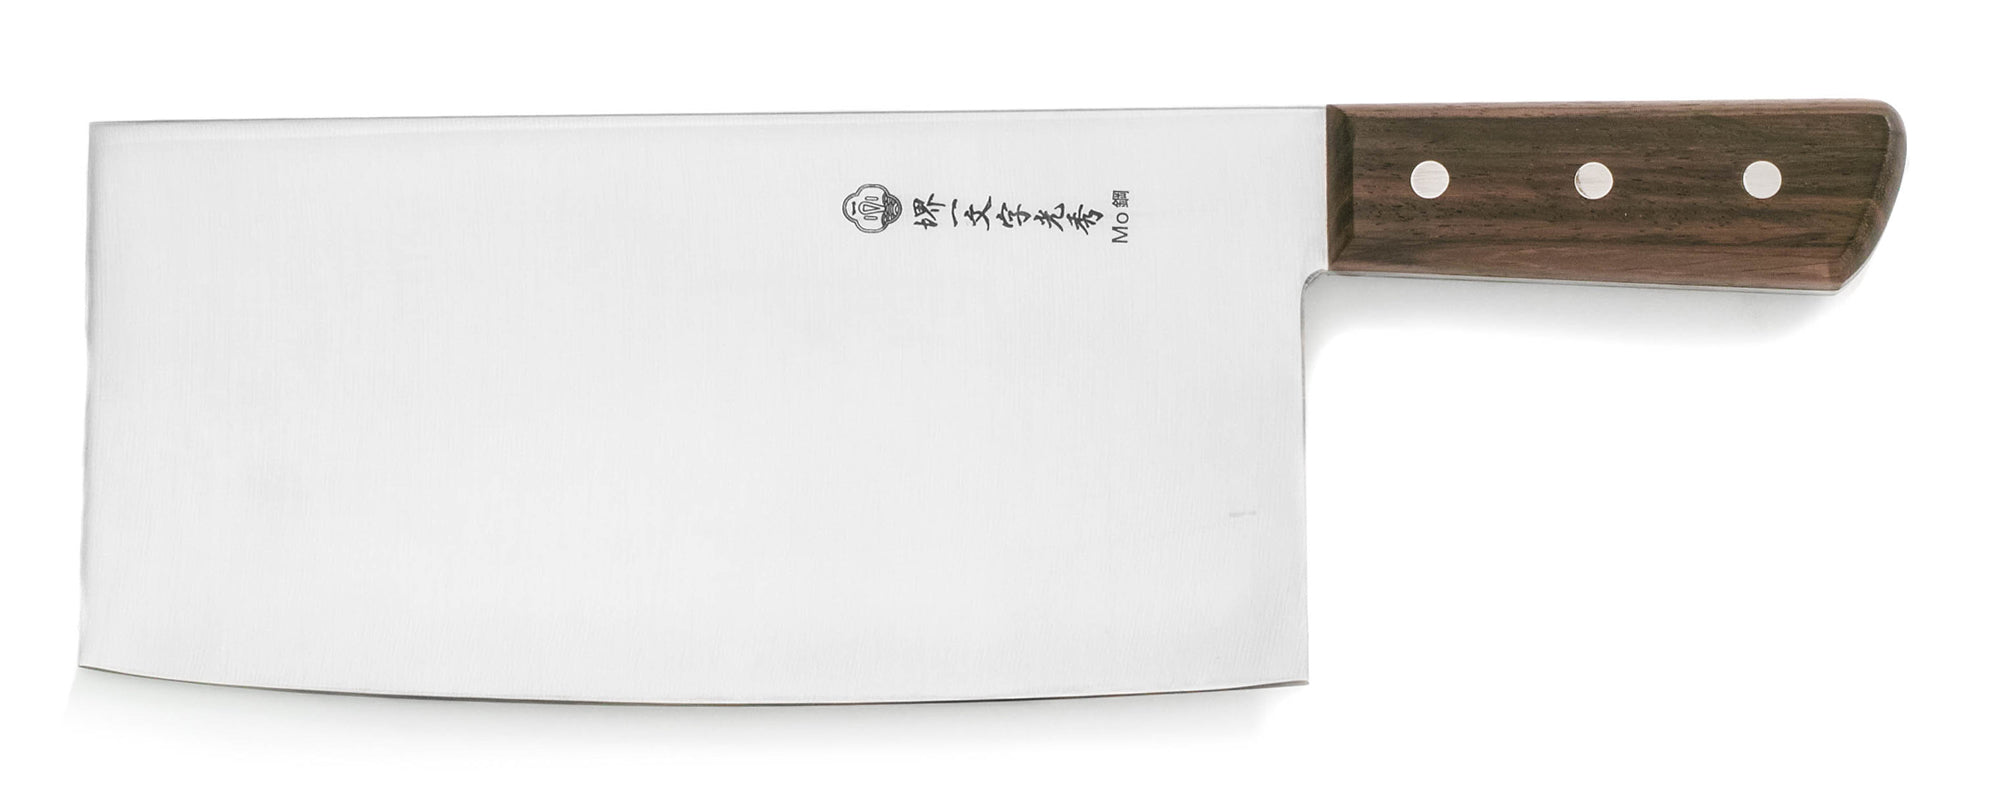 Molybdenum Steel Chinese Knife